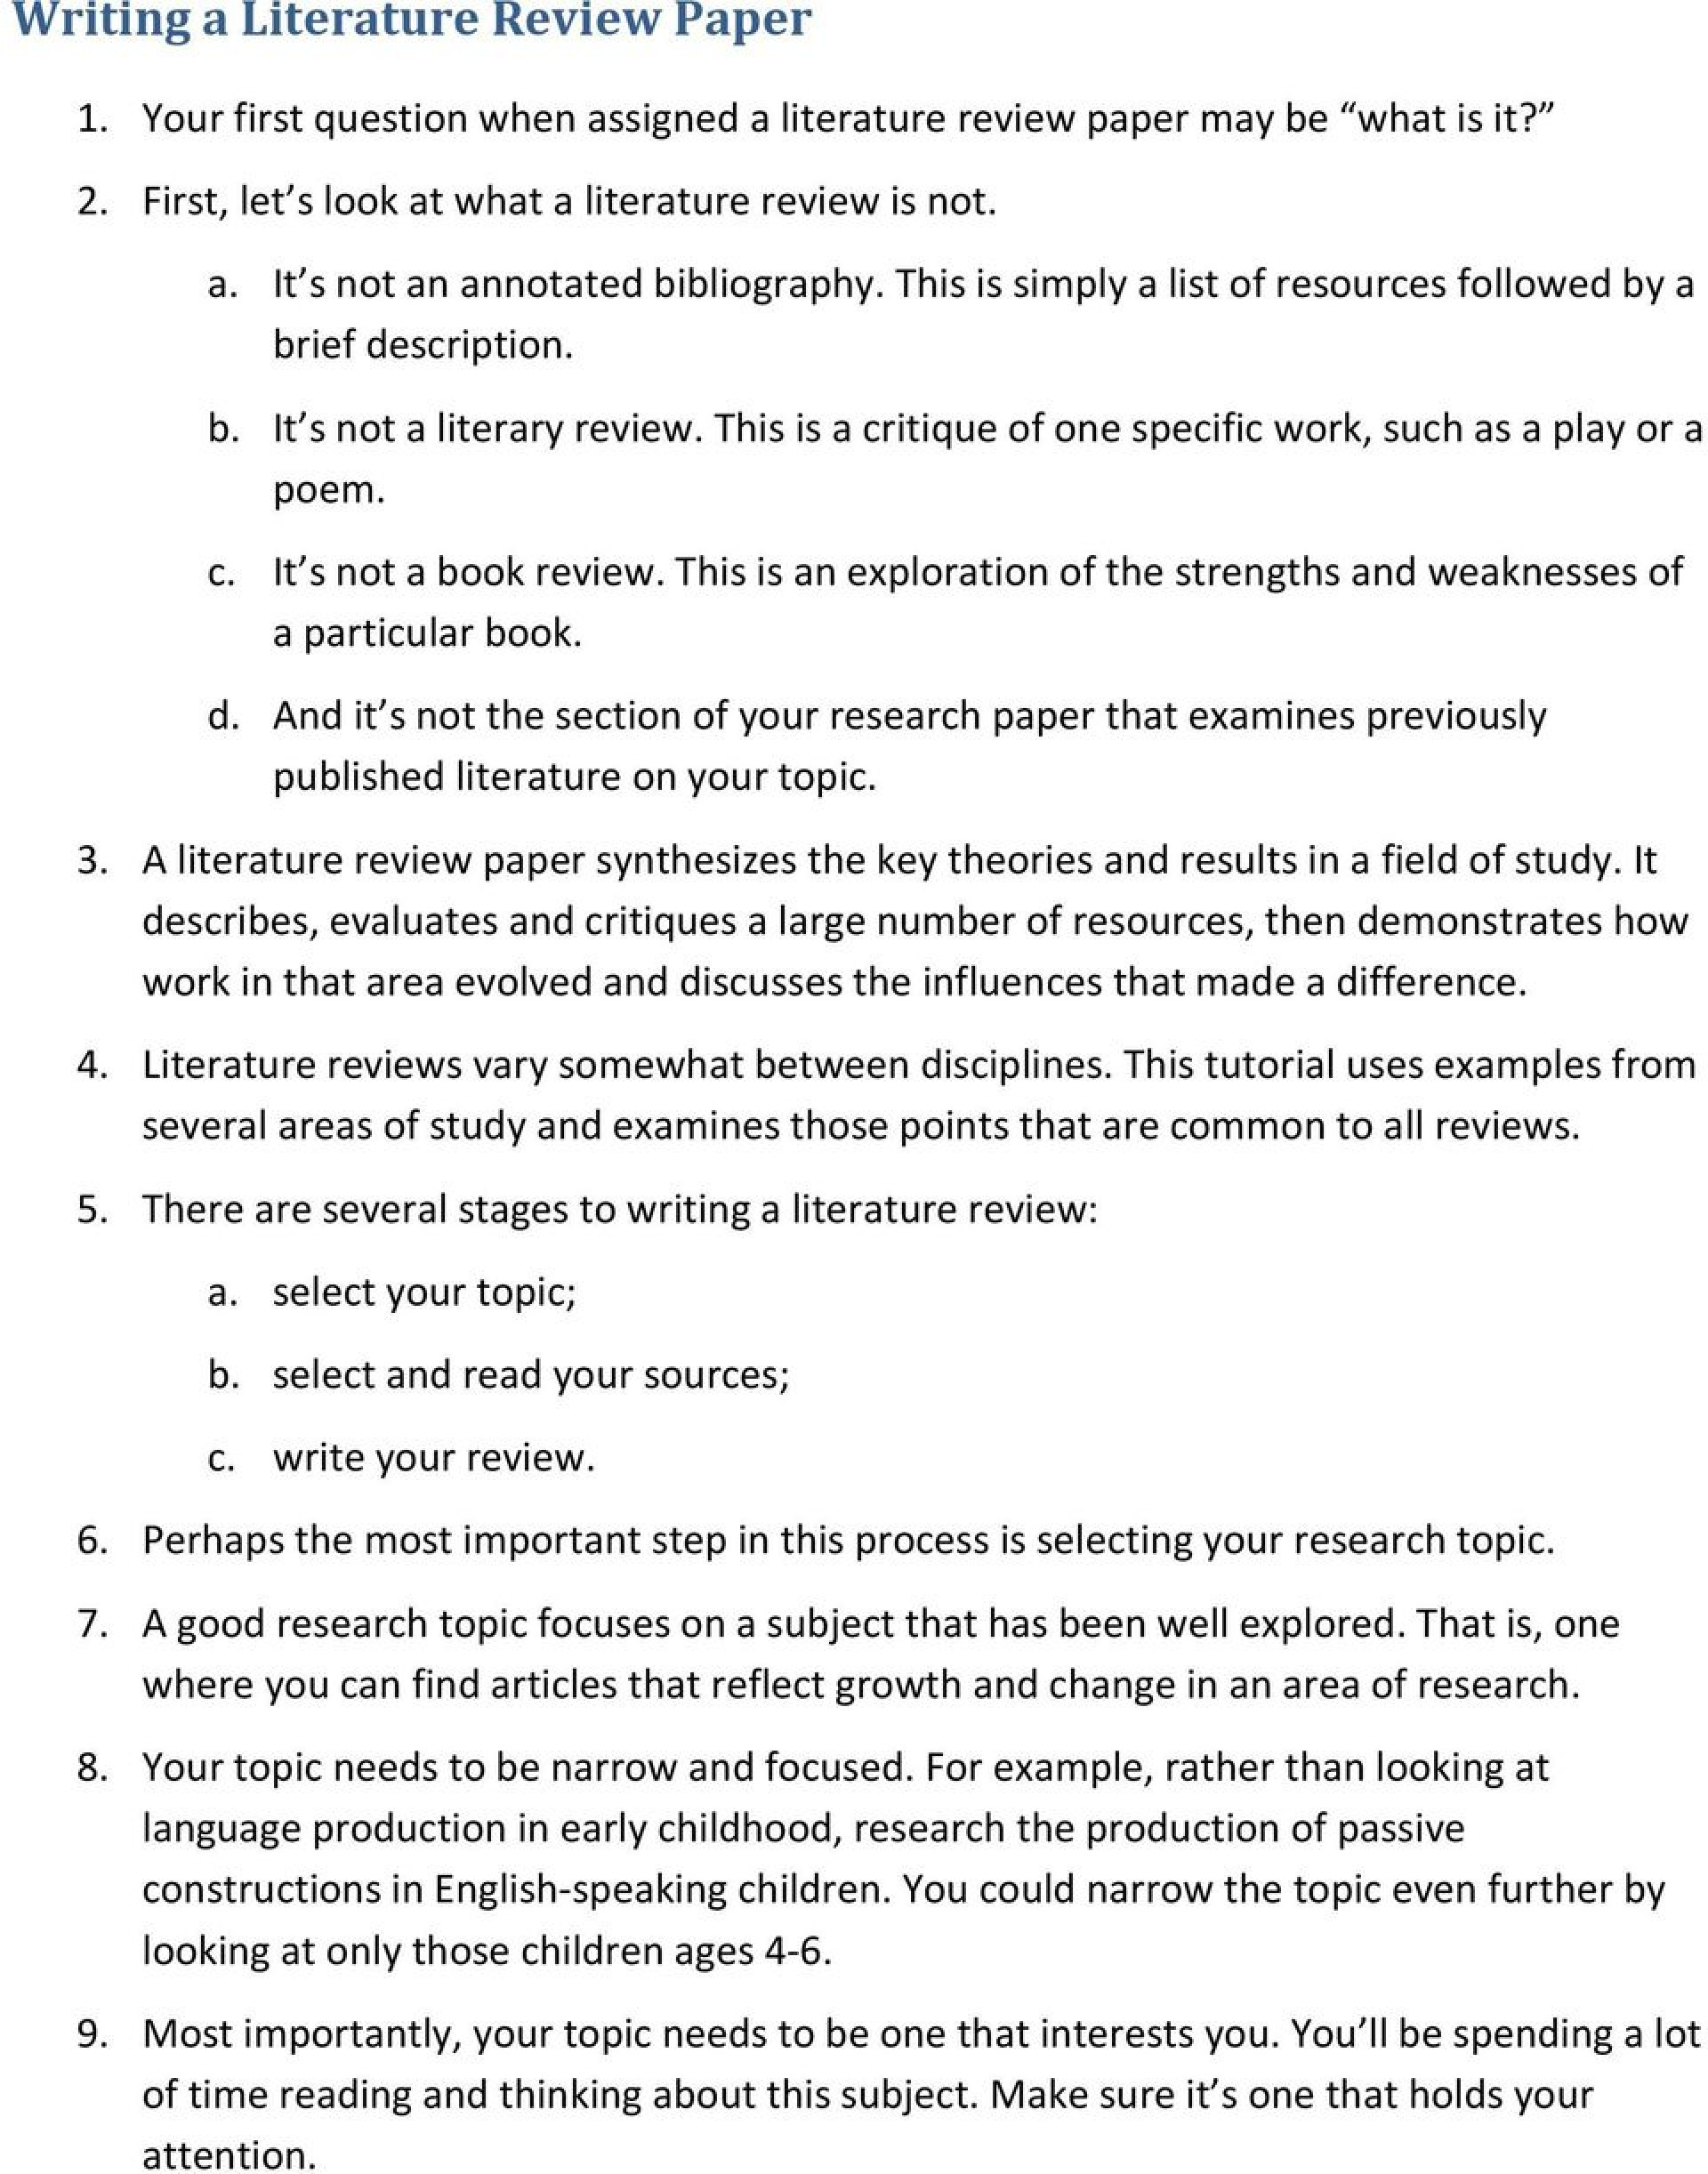 008 Research Paper Difference Between And Review Of Literature Page 1 Awesome 1920